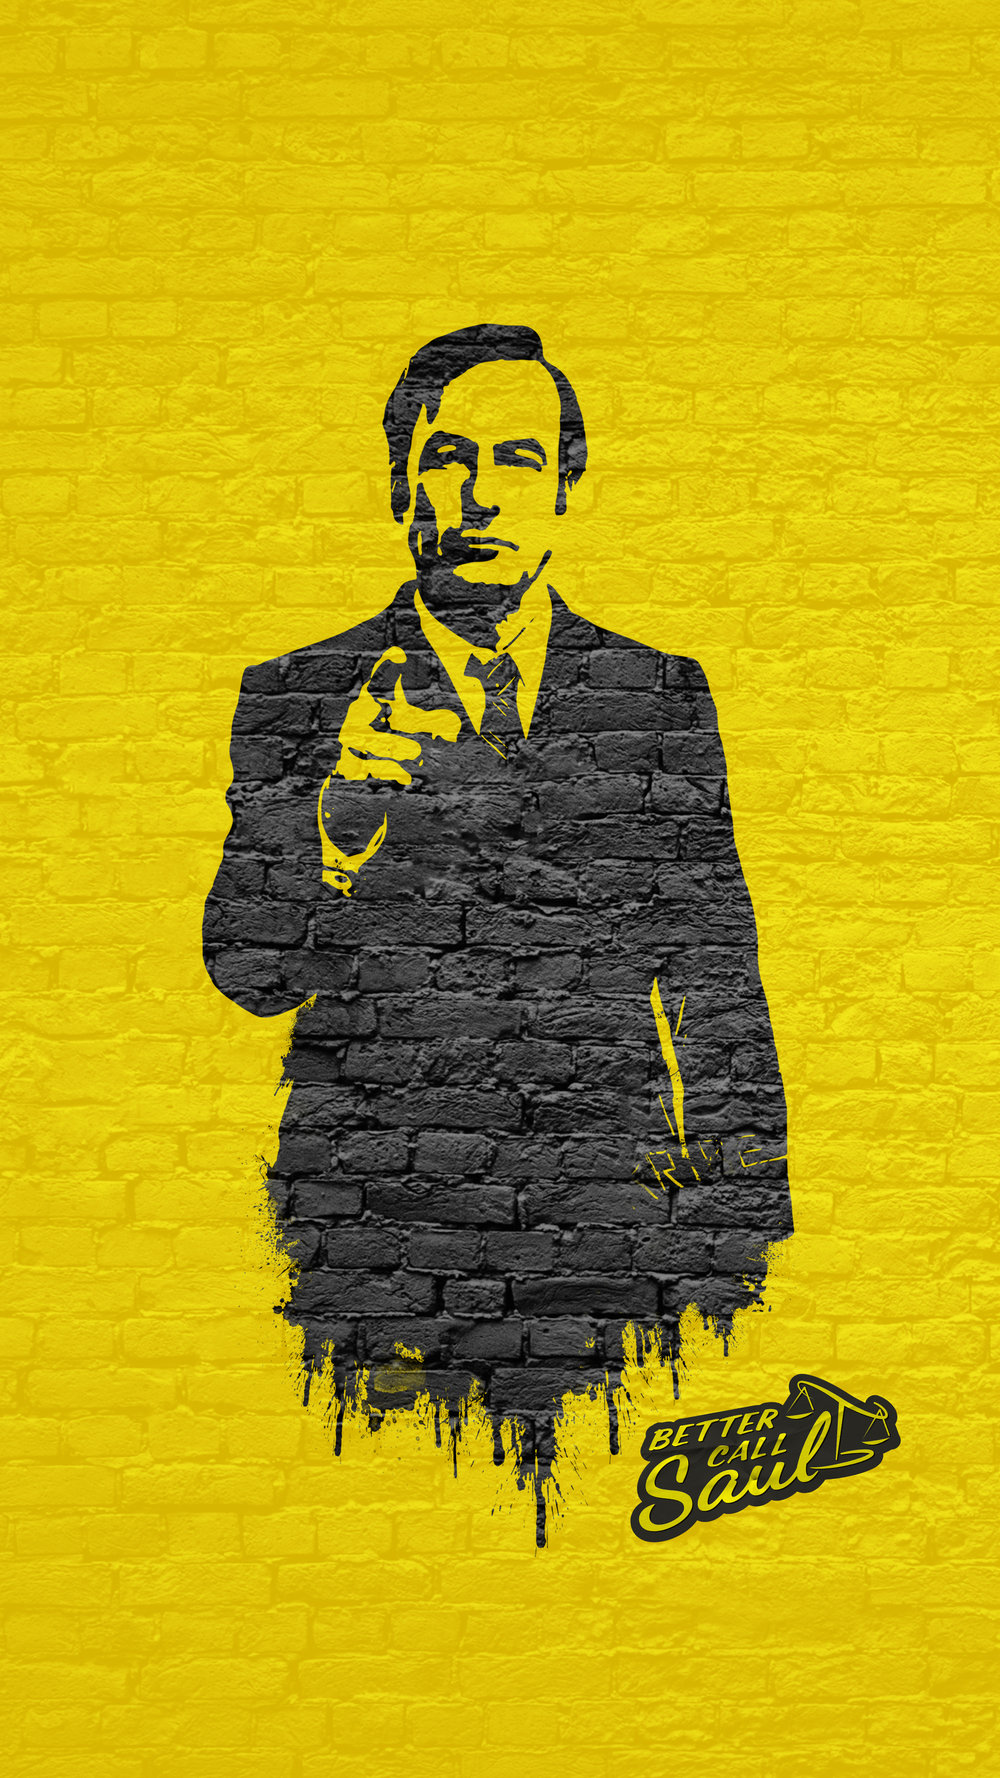 BetterCallSaul_Zedge_2250x4000_6_v2.jpg